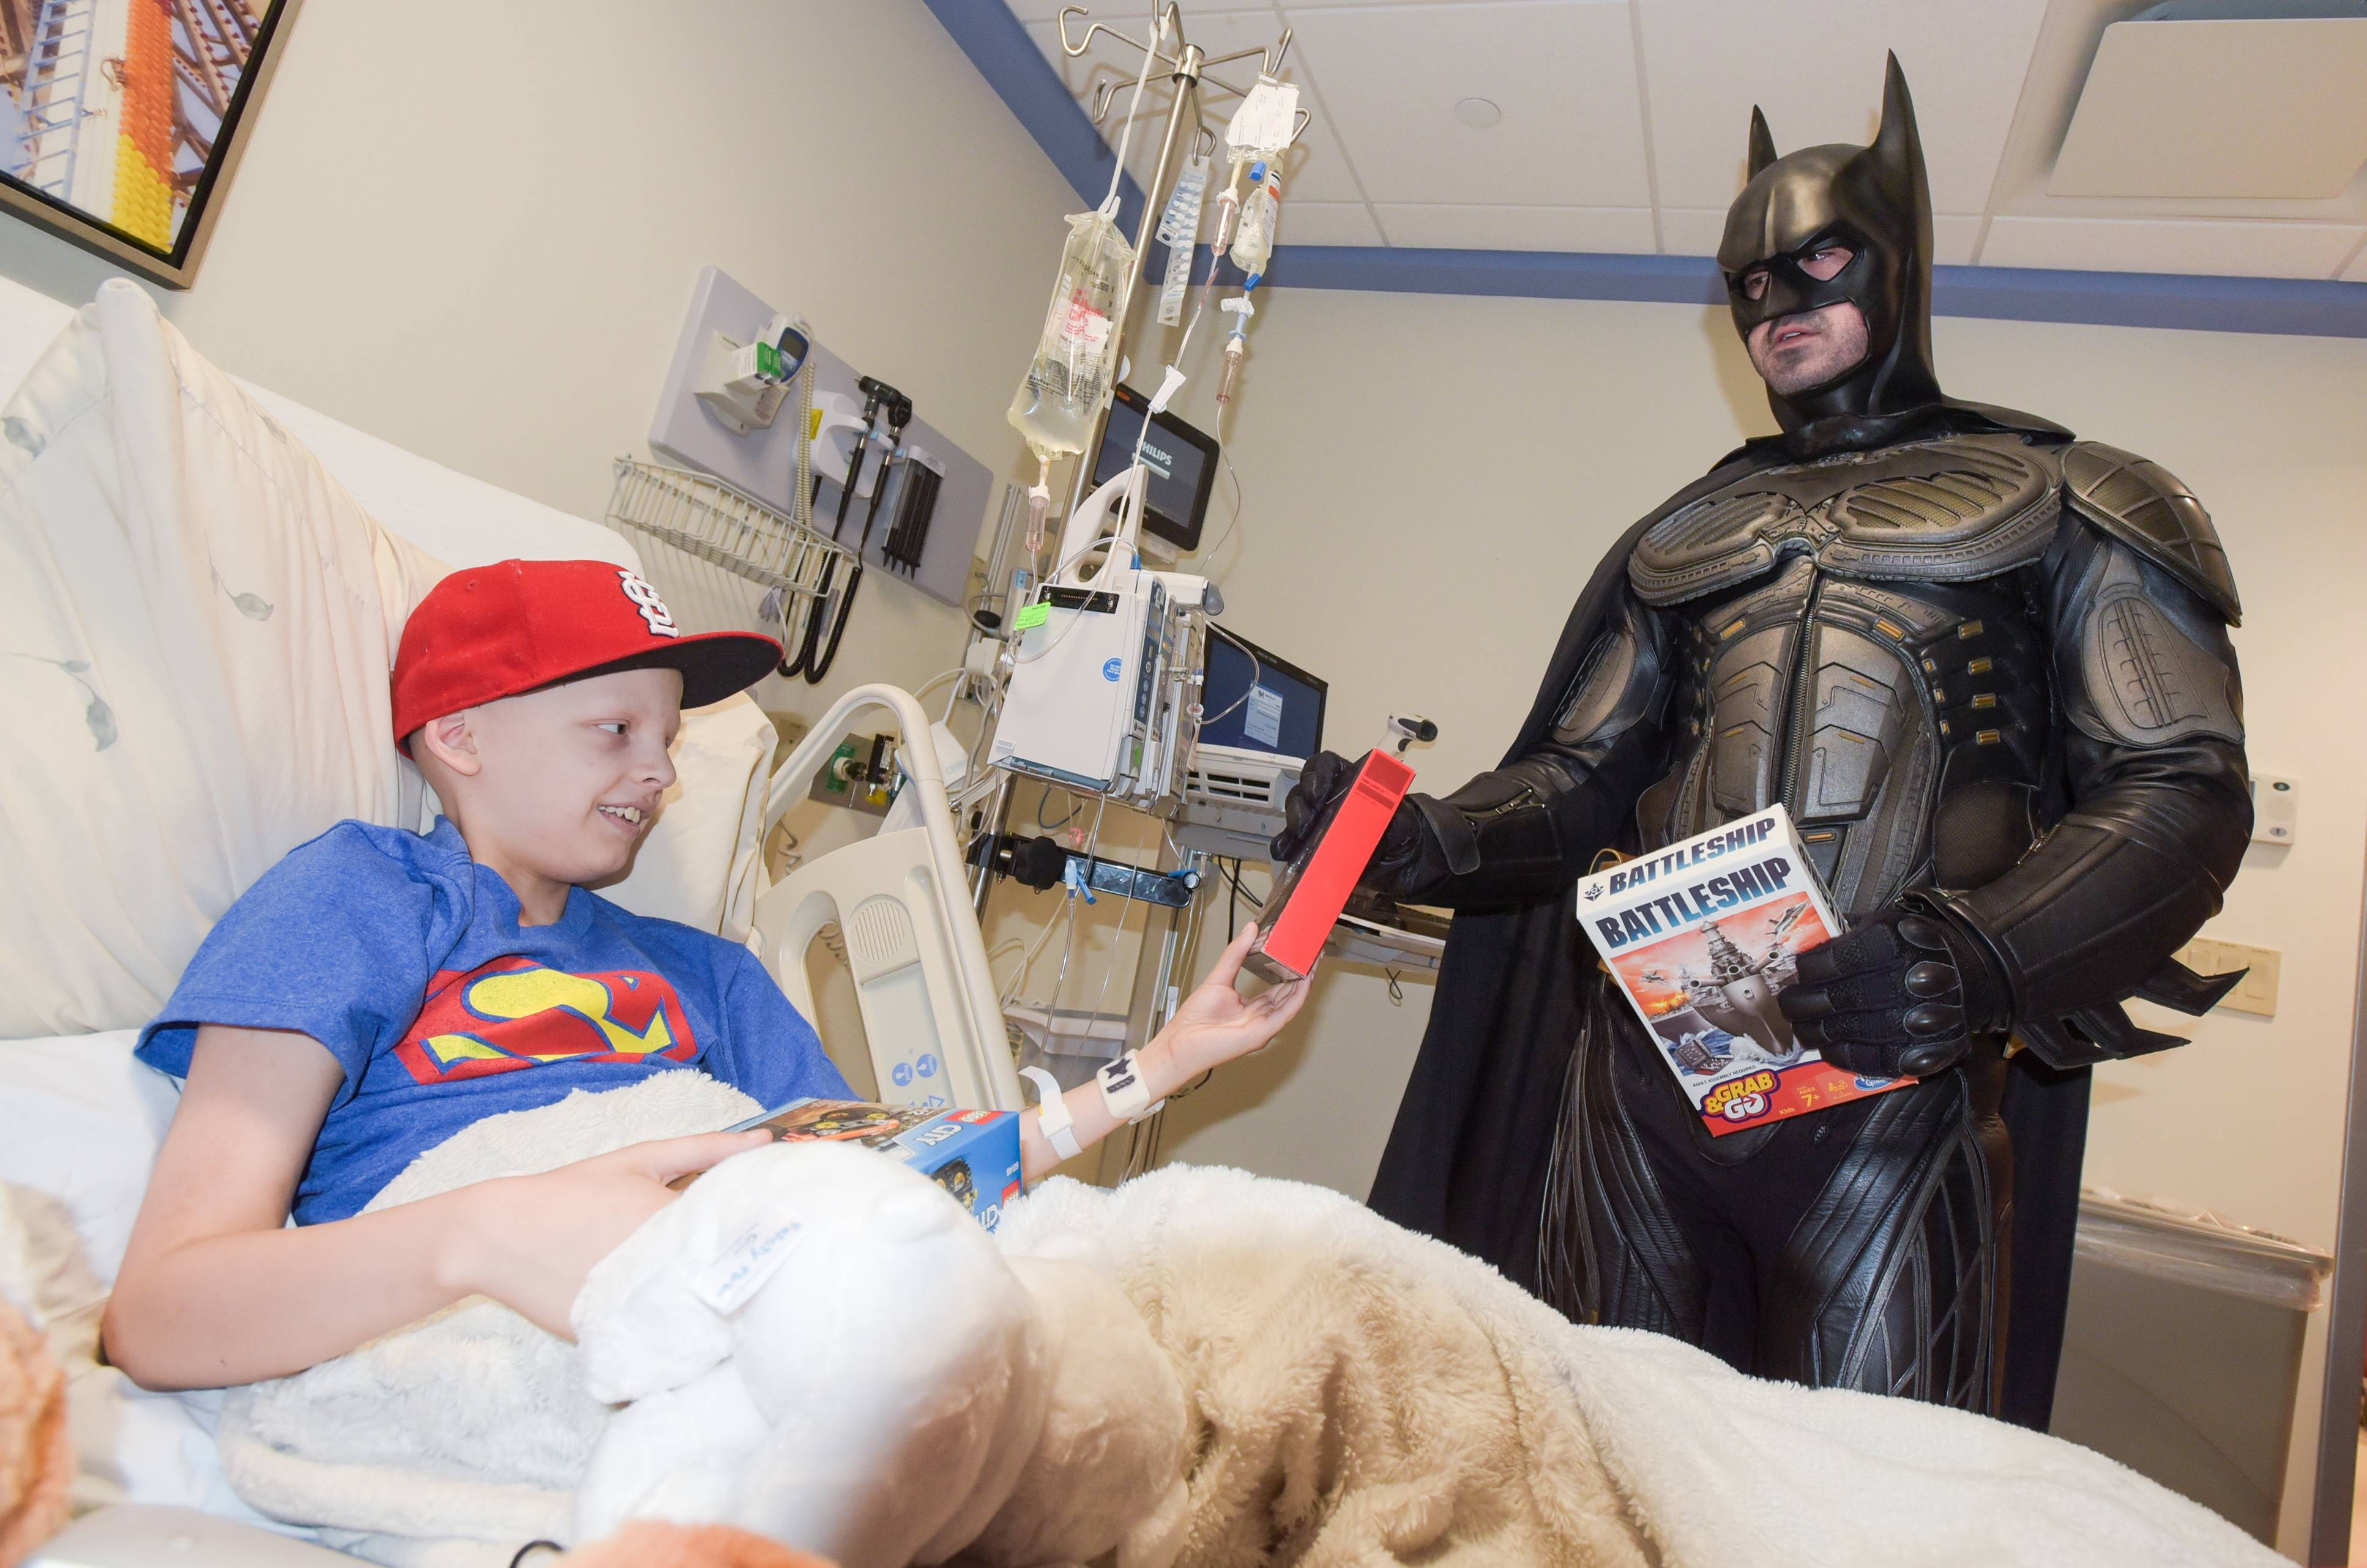 Ty Hawkinson, a 12-year-old from South Elgin with Ewing's sarcoma, gets a visit from Batman at Northwestern Medicine Central DuPage Hospital during Superhero Day.